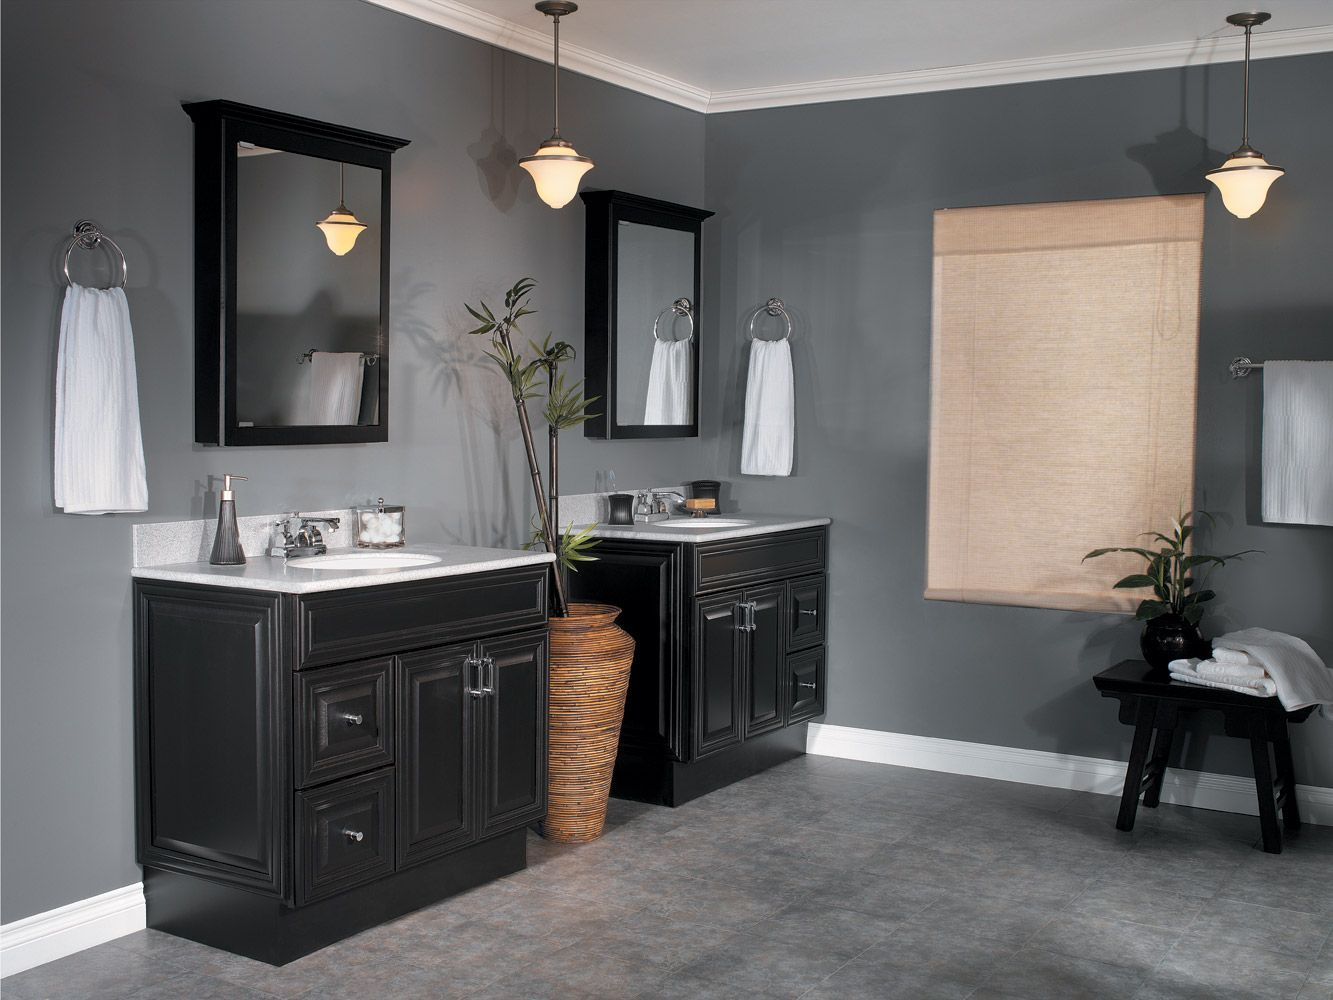 31 Best Bathroom Cabinets Ideas That Will Help You Save Fixtures with size 1333 X 1000